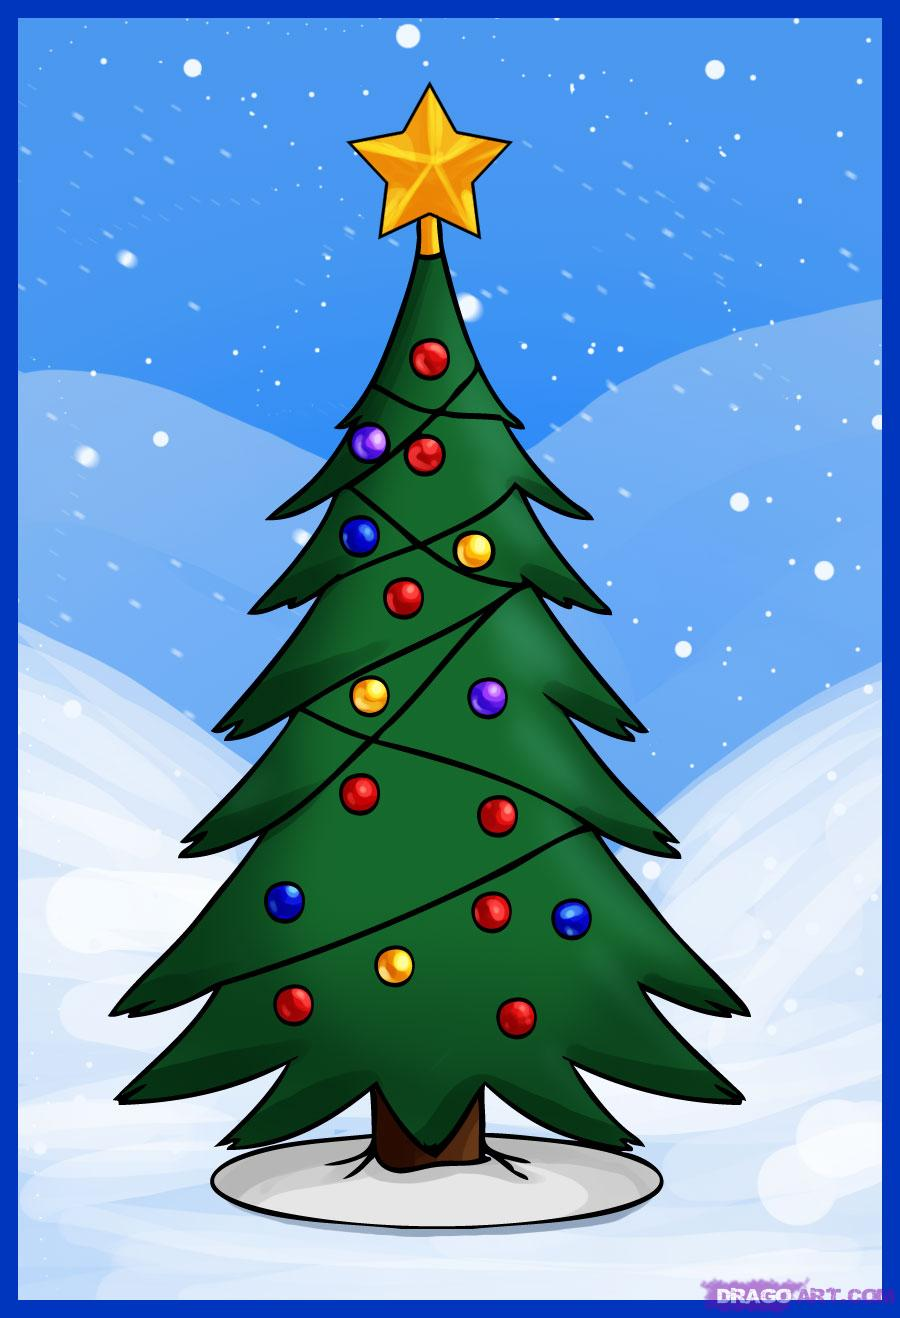 900x1318 How To Draw A Simple Christmas Tree, Step By Step, Christmas Stuff